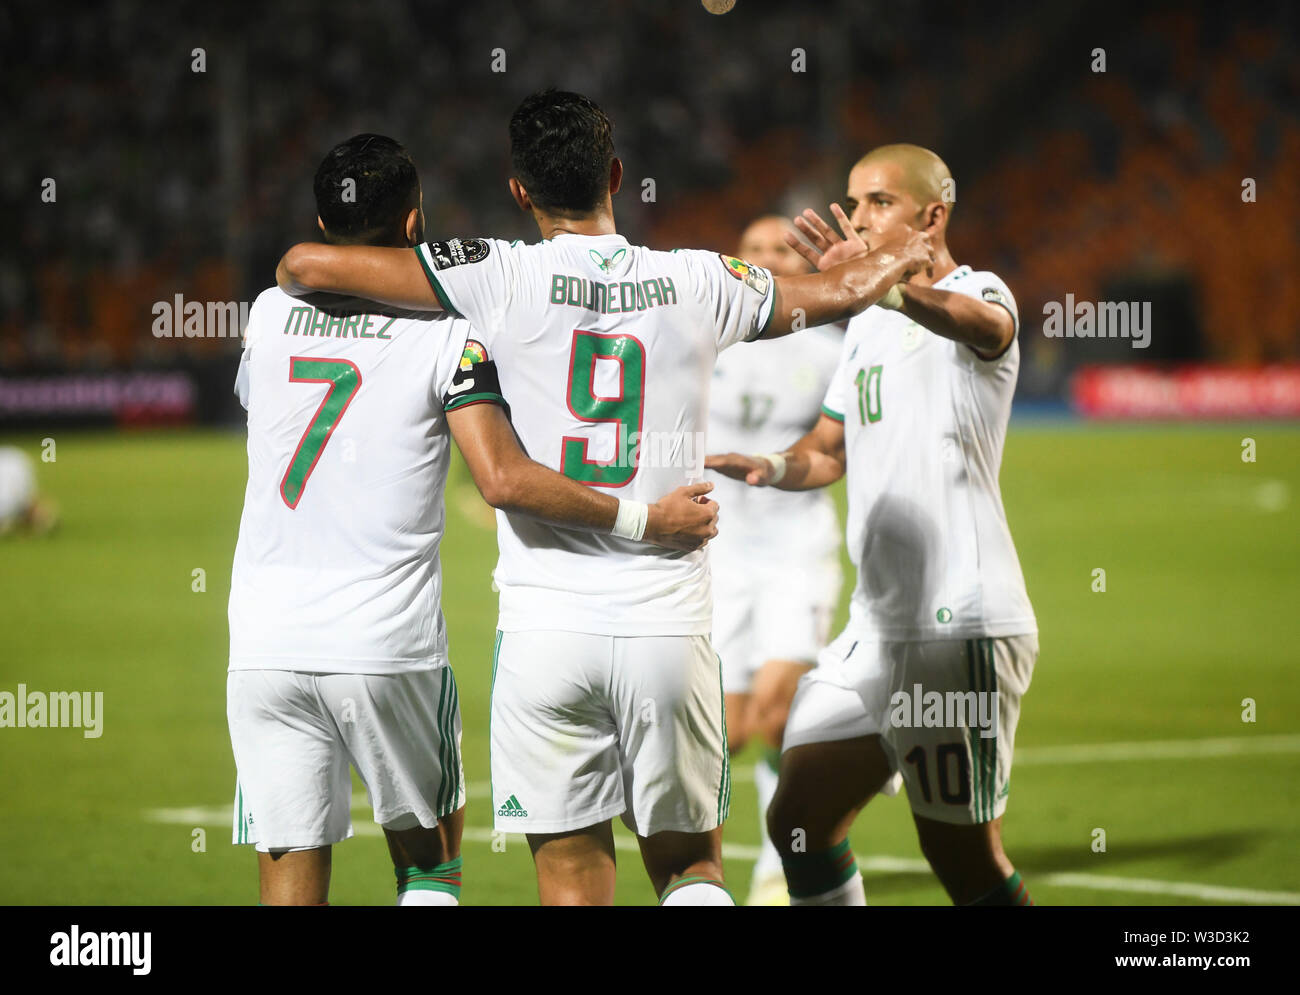 Cairo. 14th July, 2019. Players of Algeria celebrate after first scoring during the semifinal match between Algeria and Nigeria at the 2019 Africa Cup of Nations in Cairo, Egypt on July 14, 2019. Credit: Wu Huiwo/Xinhua/Alamy Live News - Stock Image